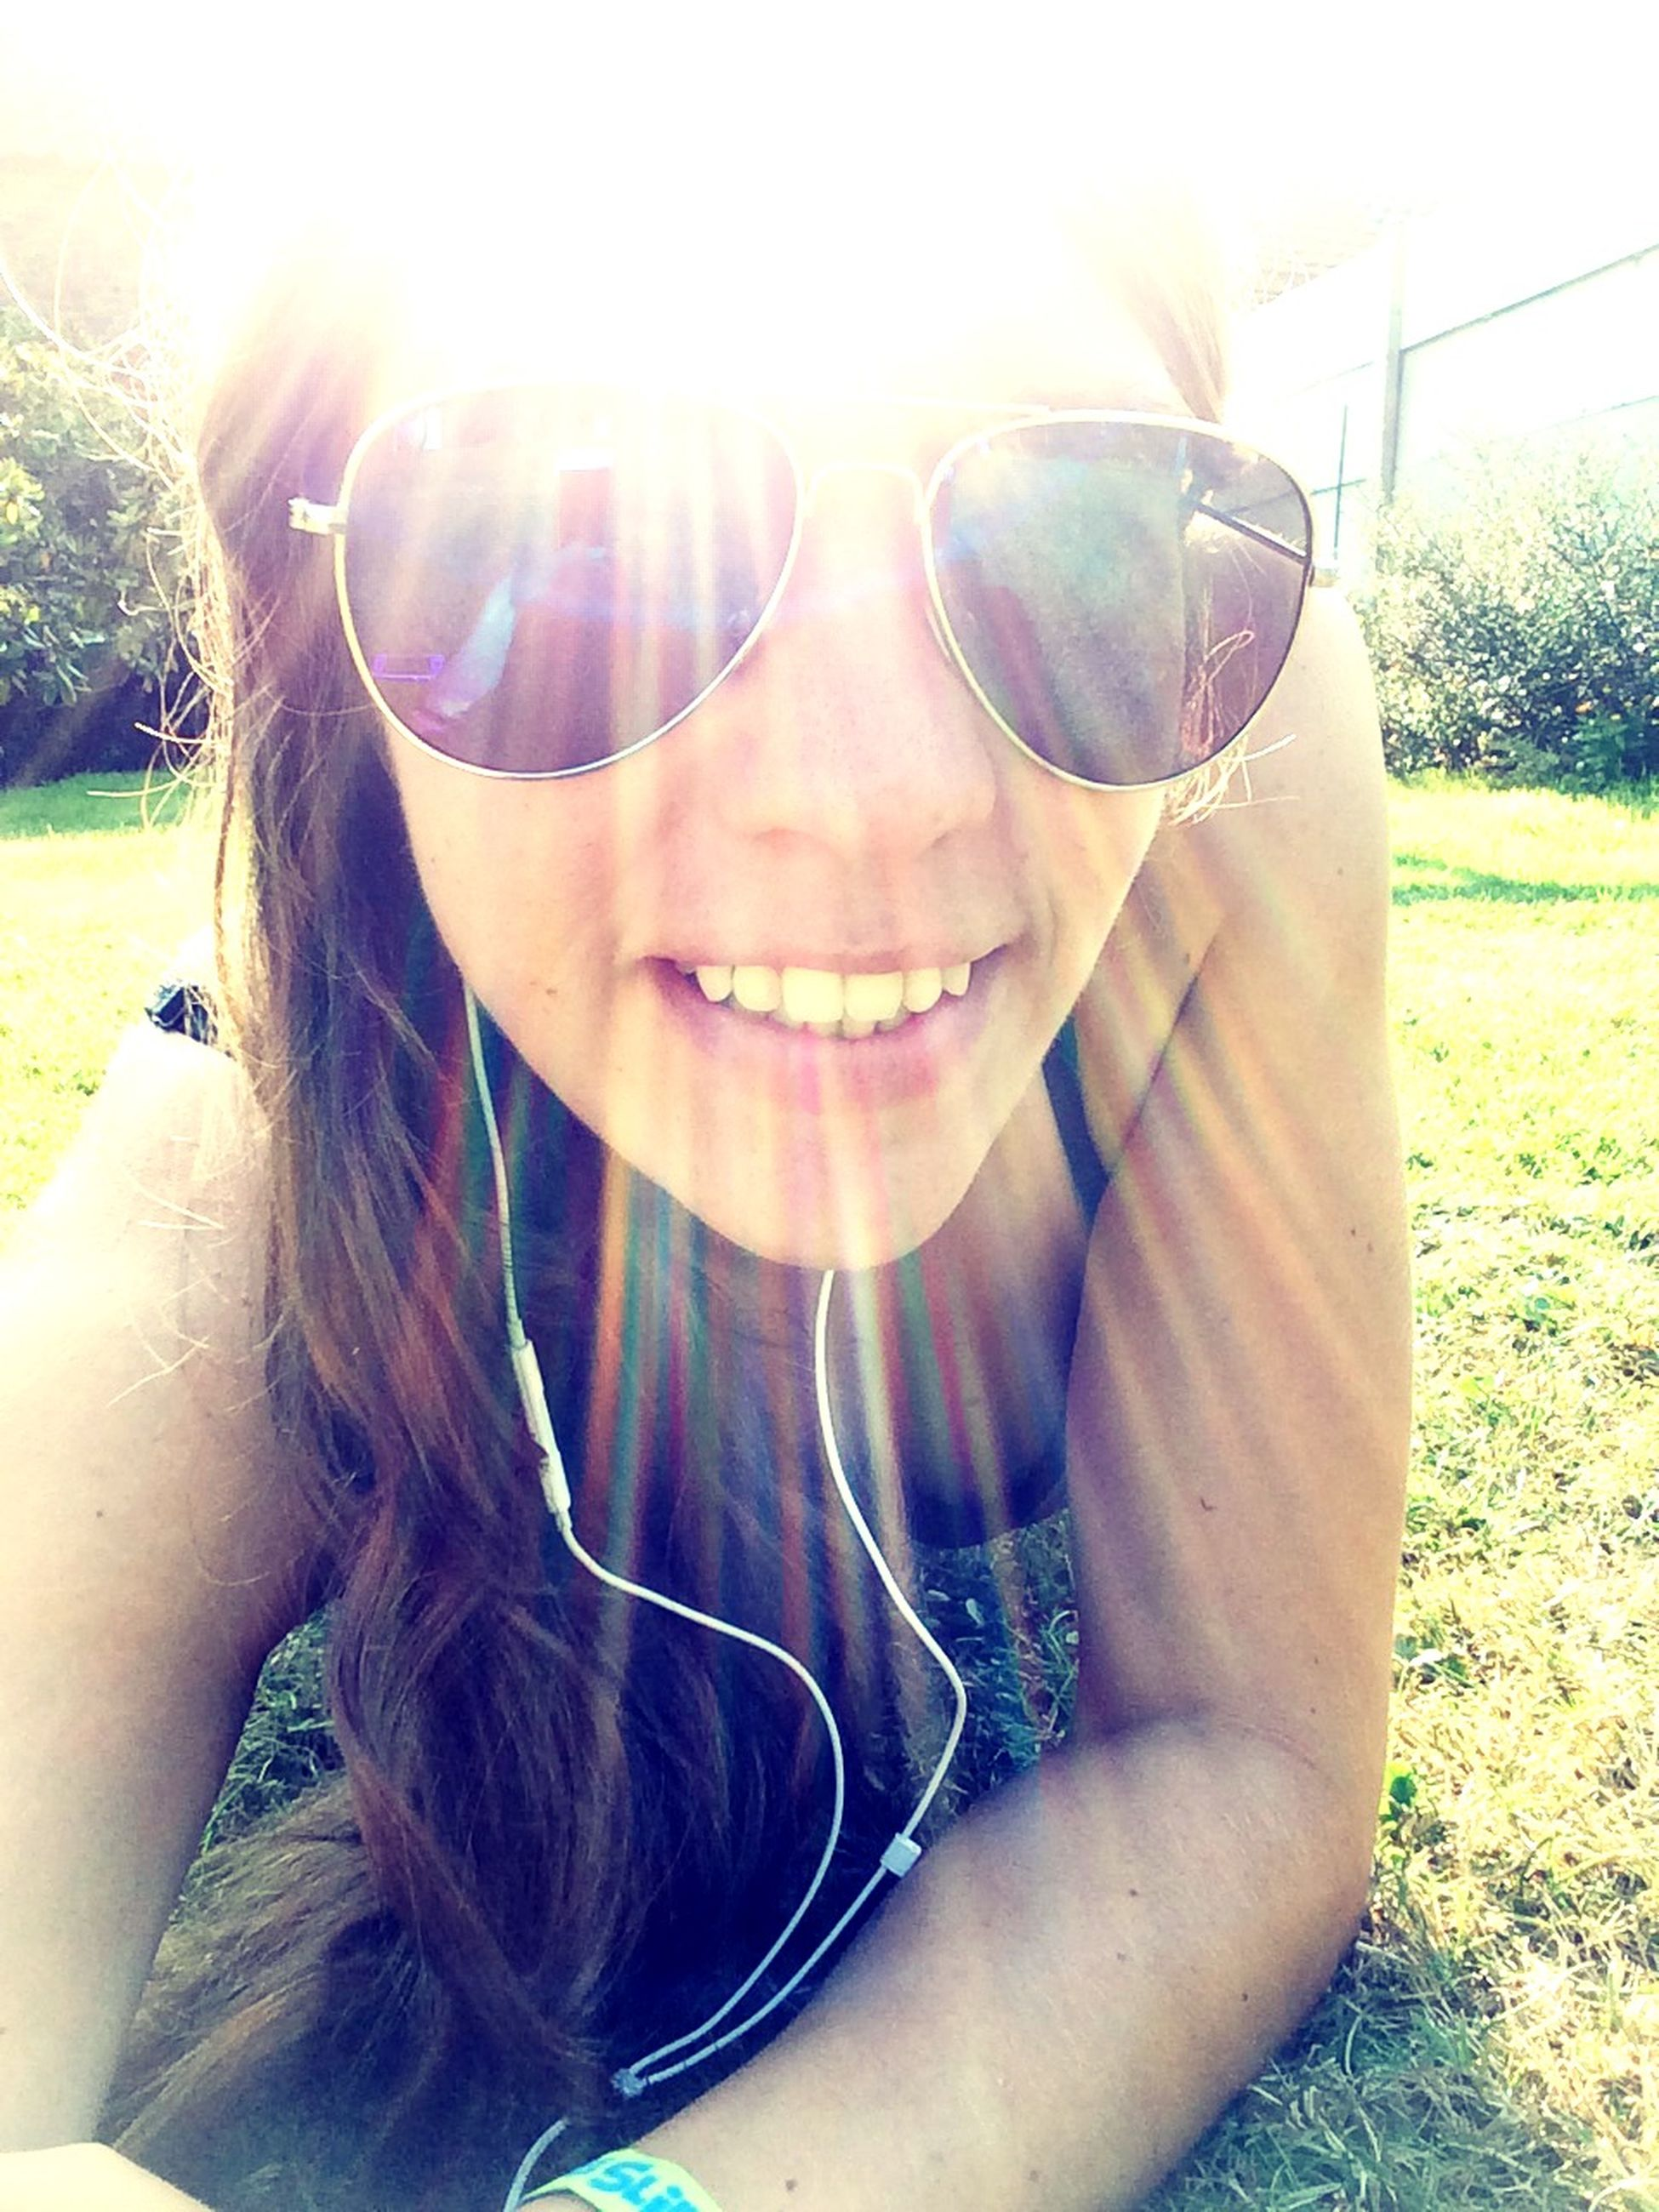 sun, sunlight, sunbeam, lens flare, young adult, lifestyles, sunglasses, leisure activity, person, sunny, portrait, looking at camera, young women, headshot, front view, day, close-up